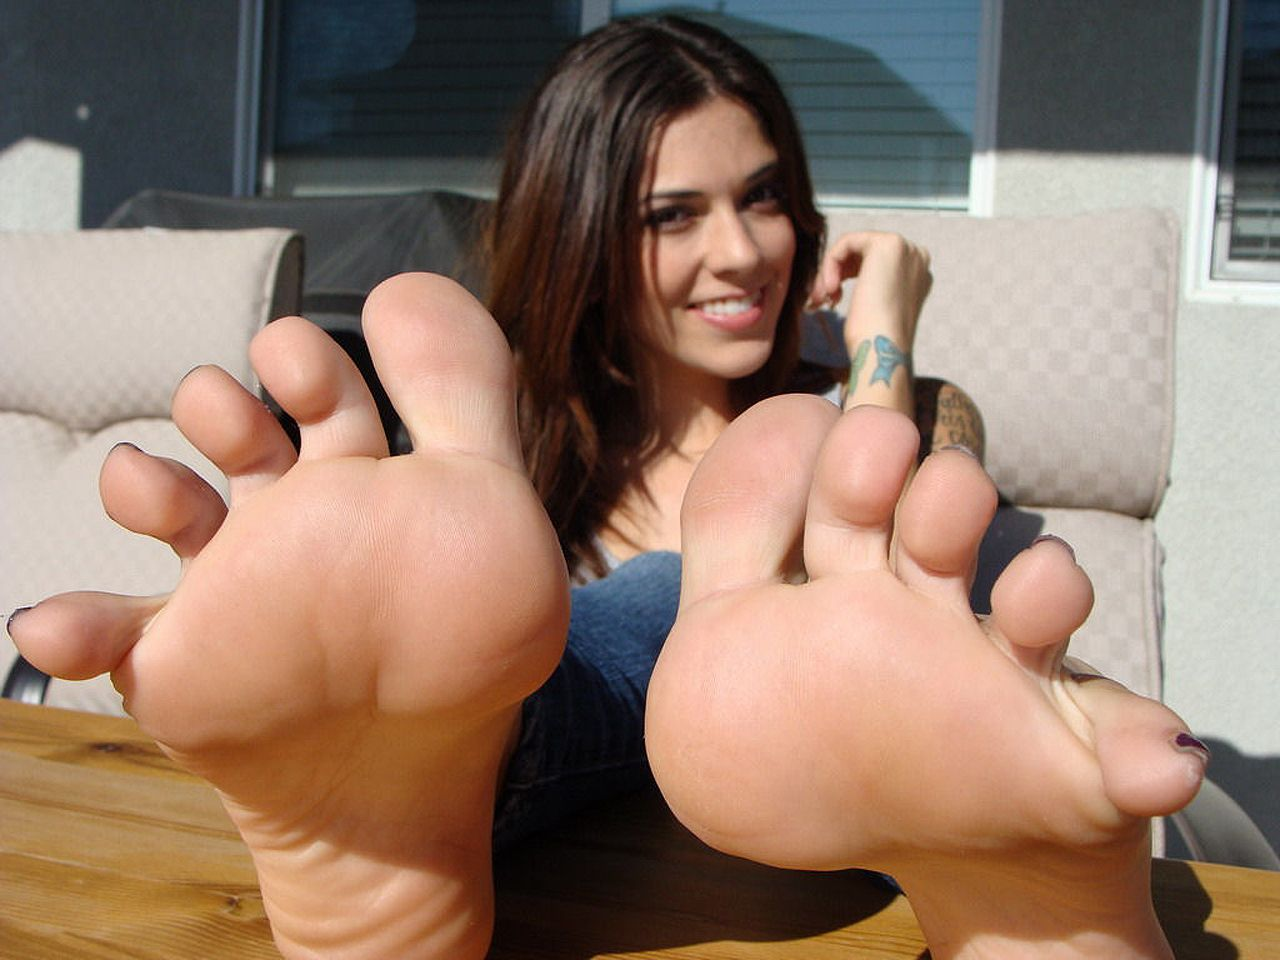 Girls lick inbetween toes